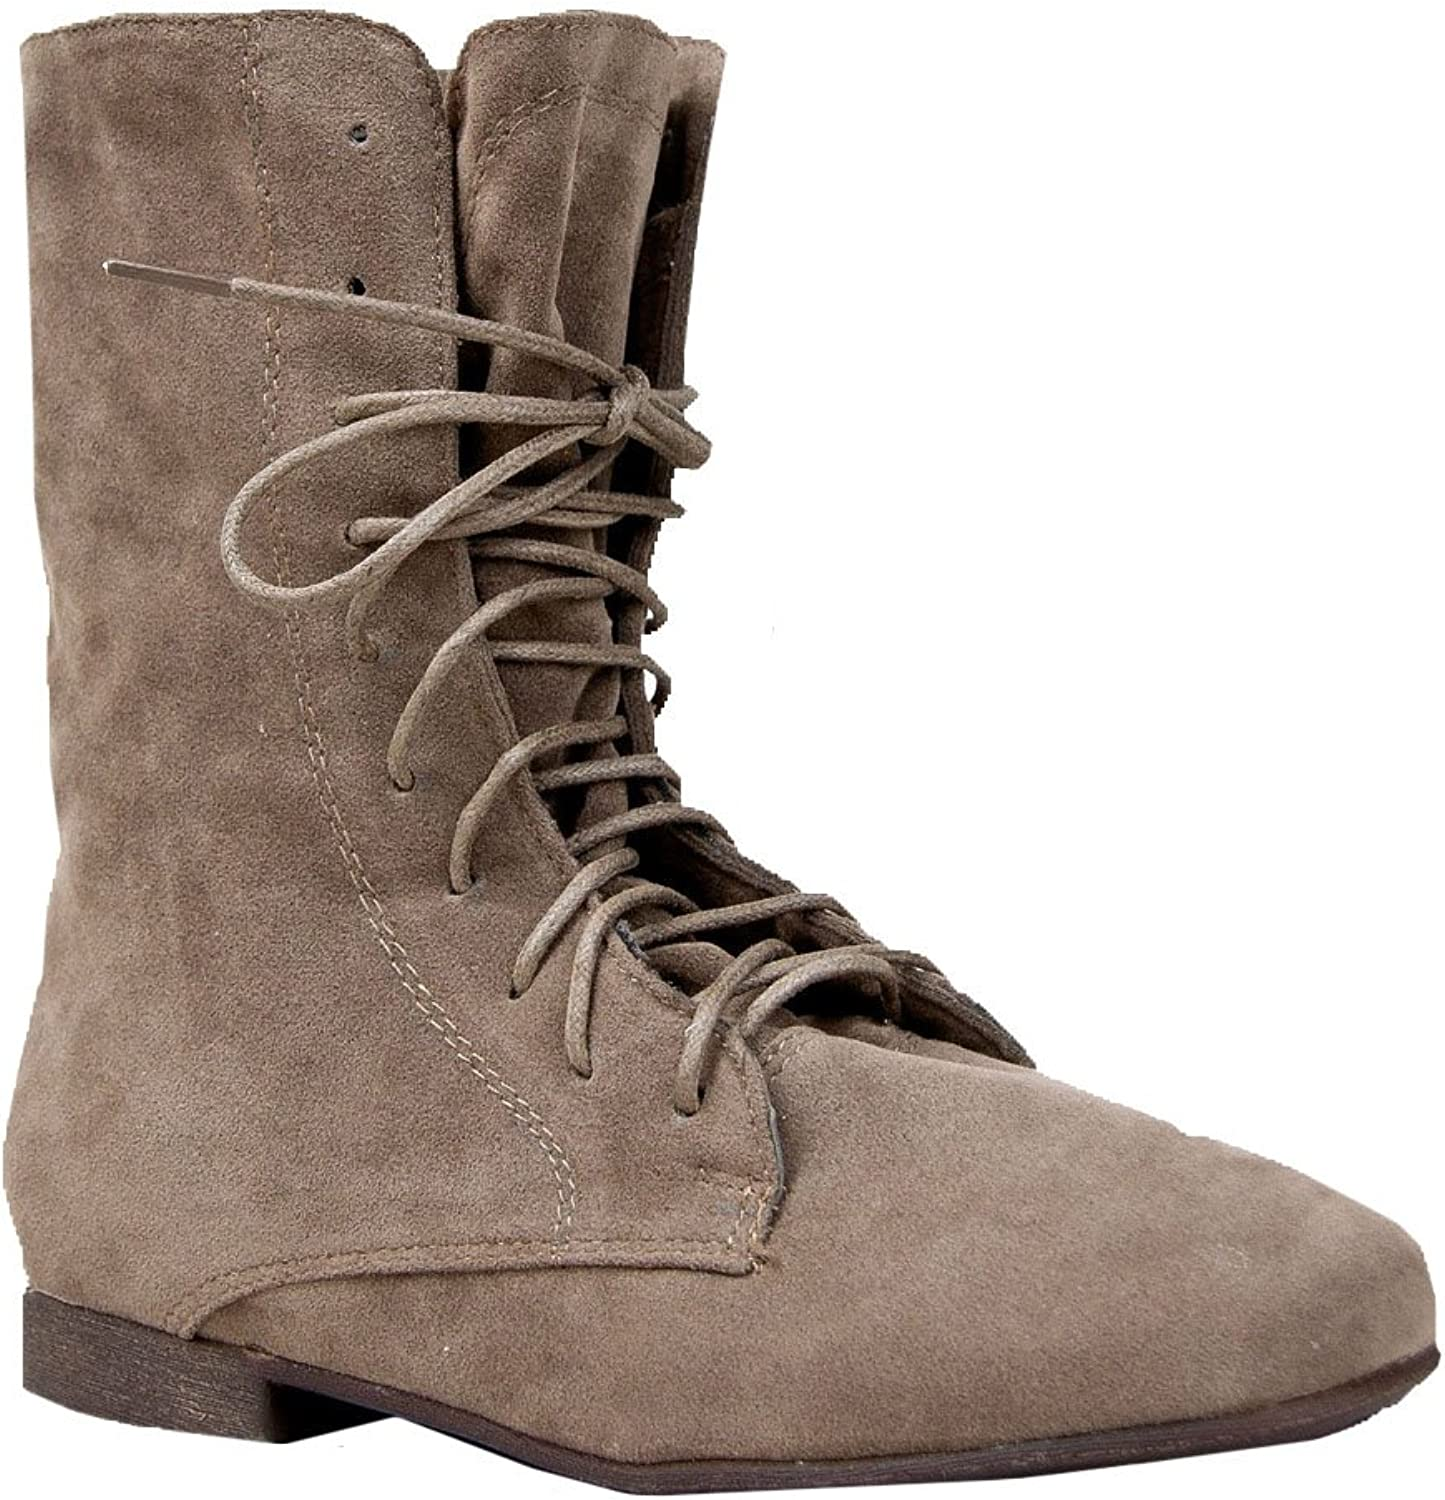 Breckelle's Sandy-62 Basic Casual Cuffed Lace Up Flat Ankle Bootie Boot